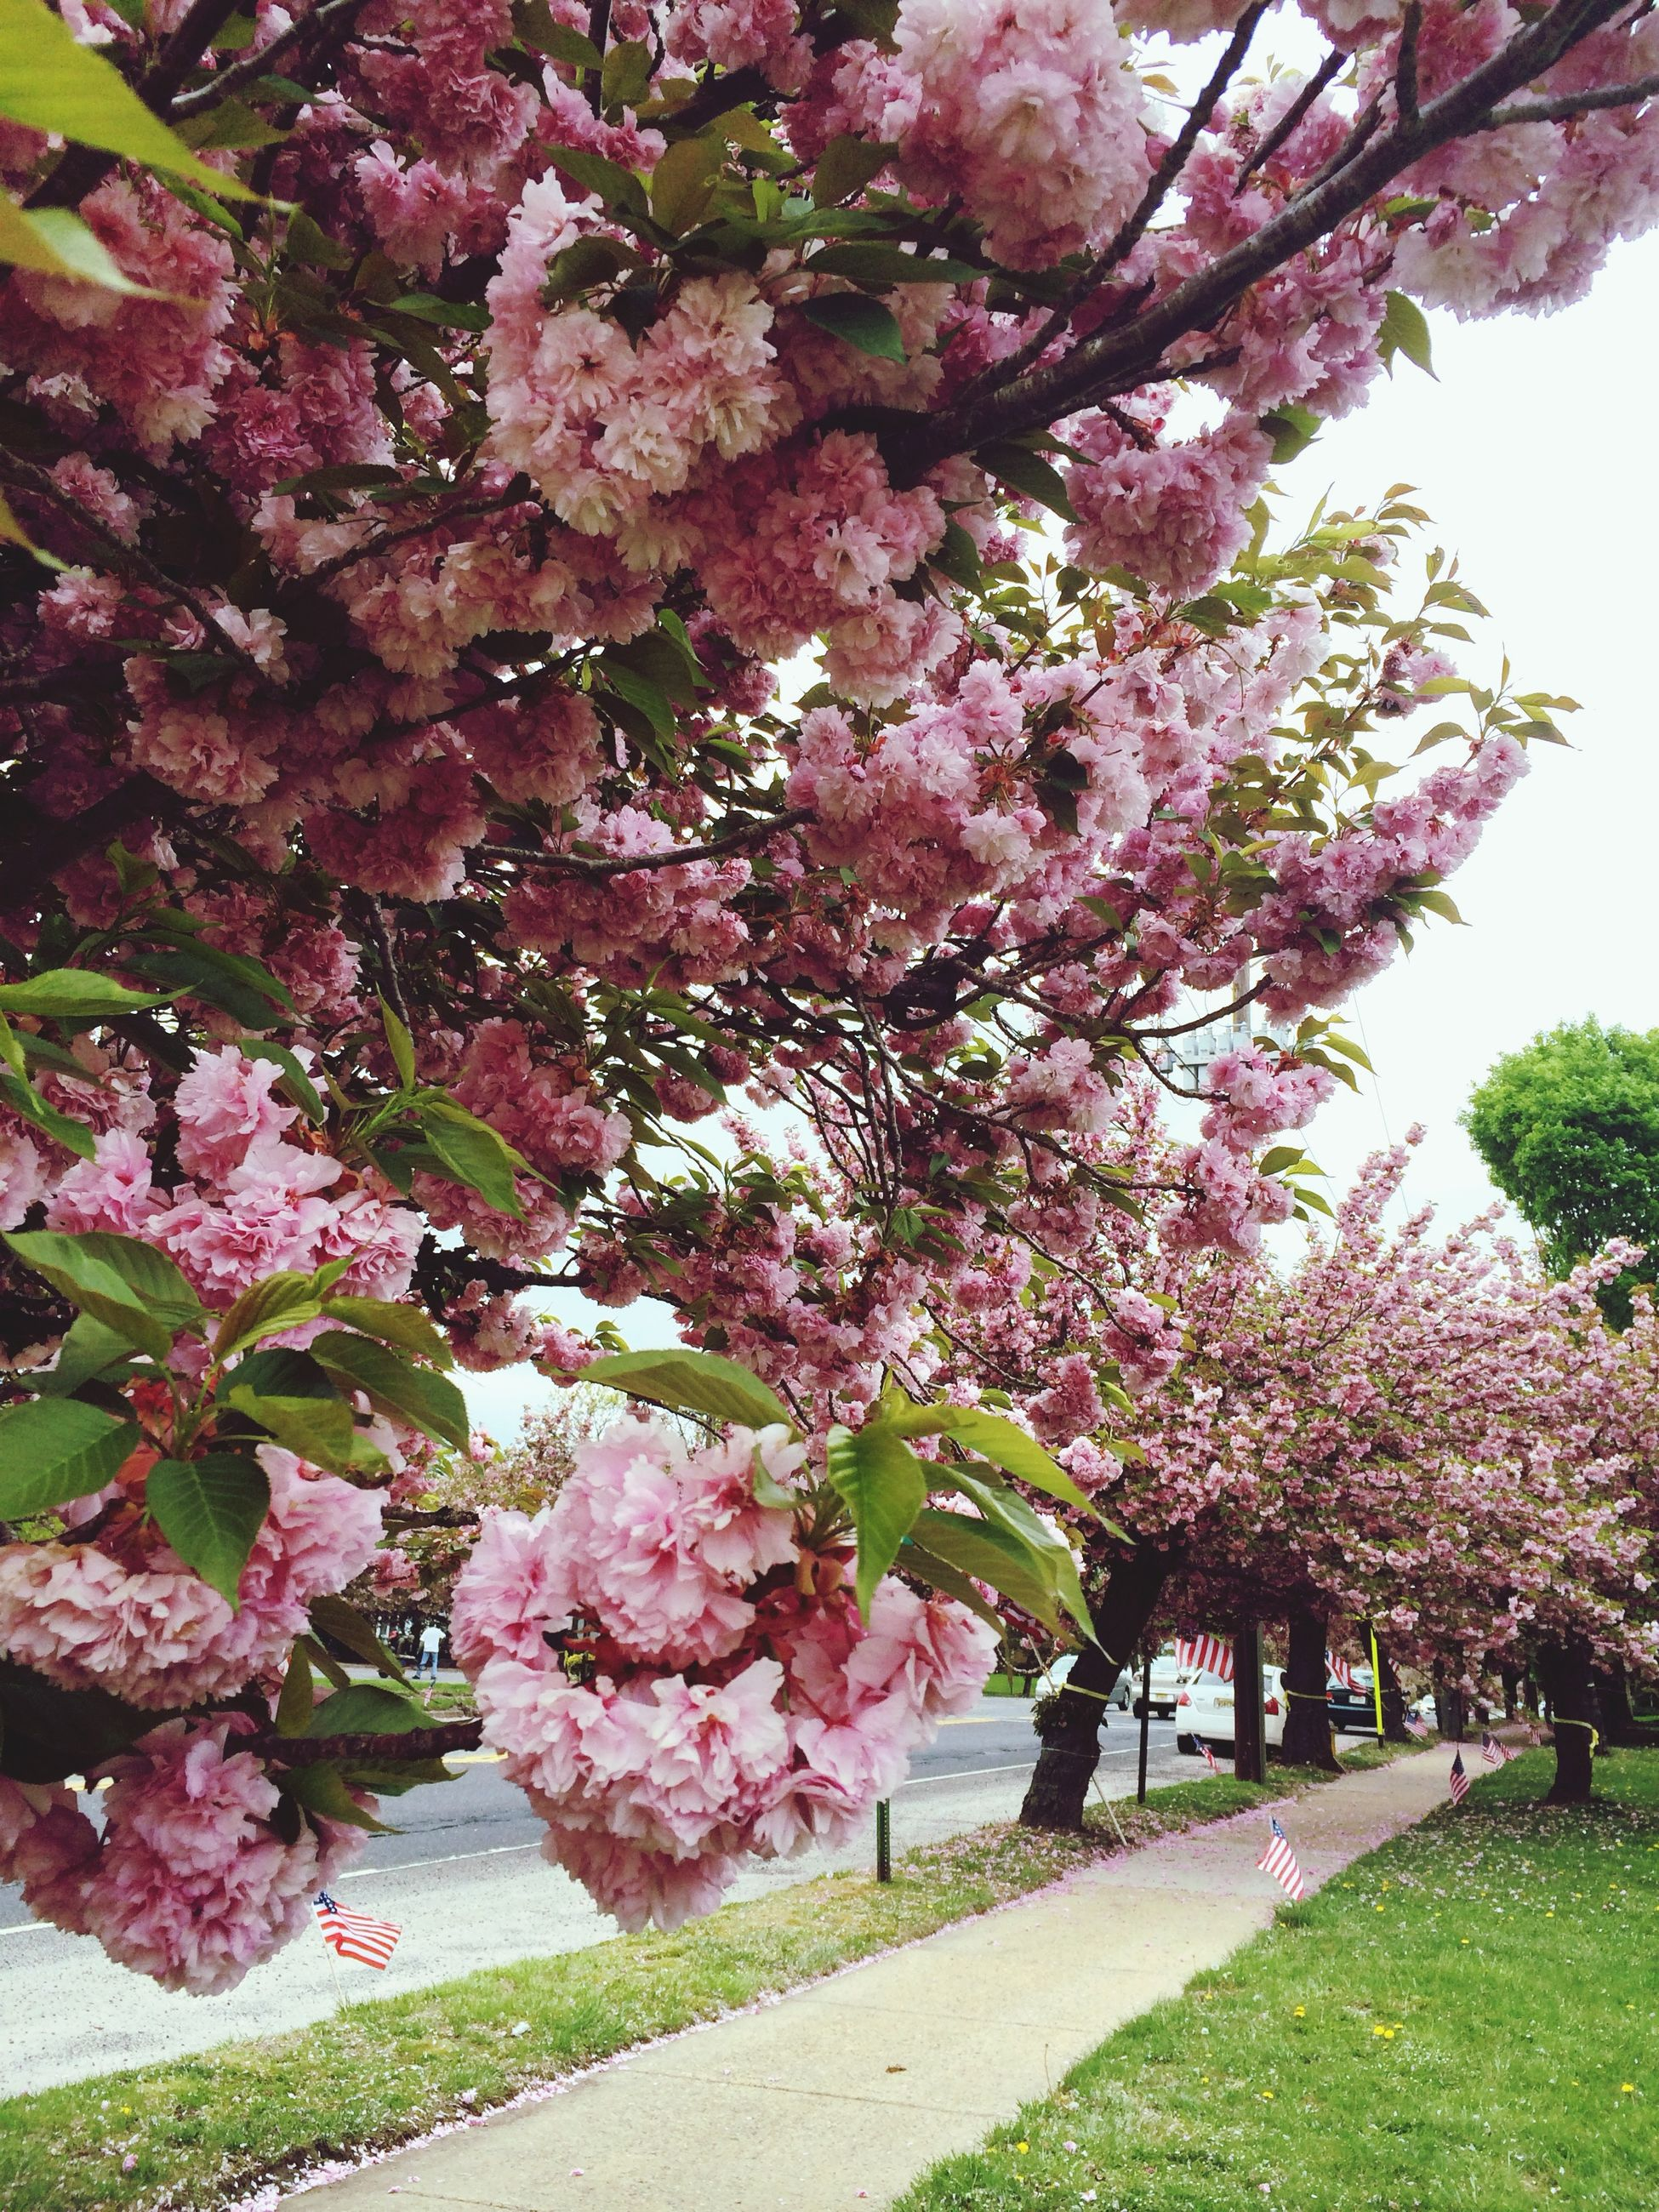 tree, flower, branch, growth, freshness, beauty in nature, pink color, blossom, nature, fragility, cherry tree, cherry blossom, park - man made space, springtime, in bloom, tranquility, day, spring, pink, blooming